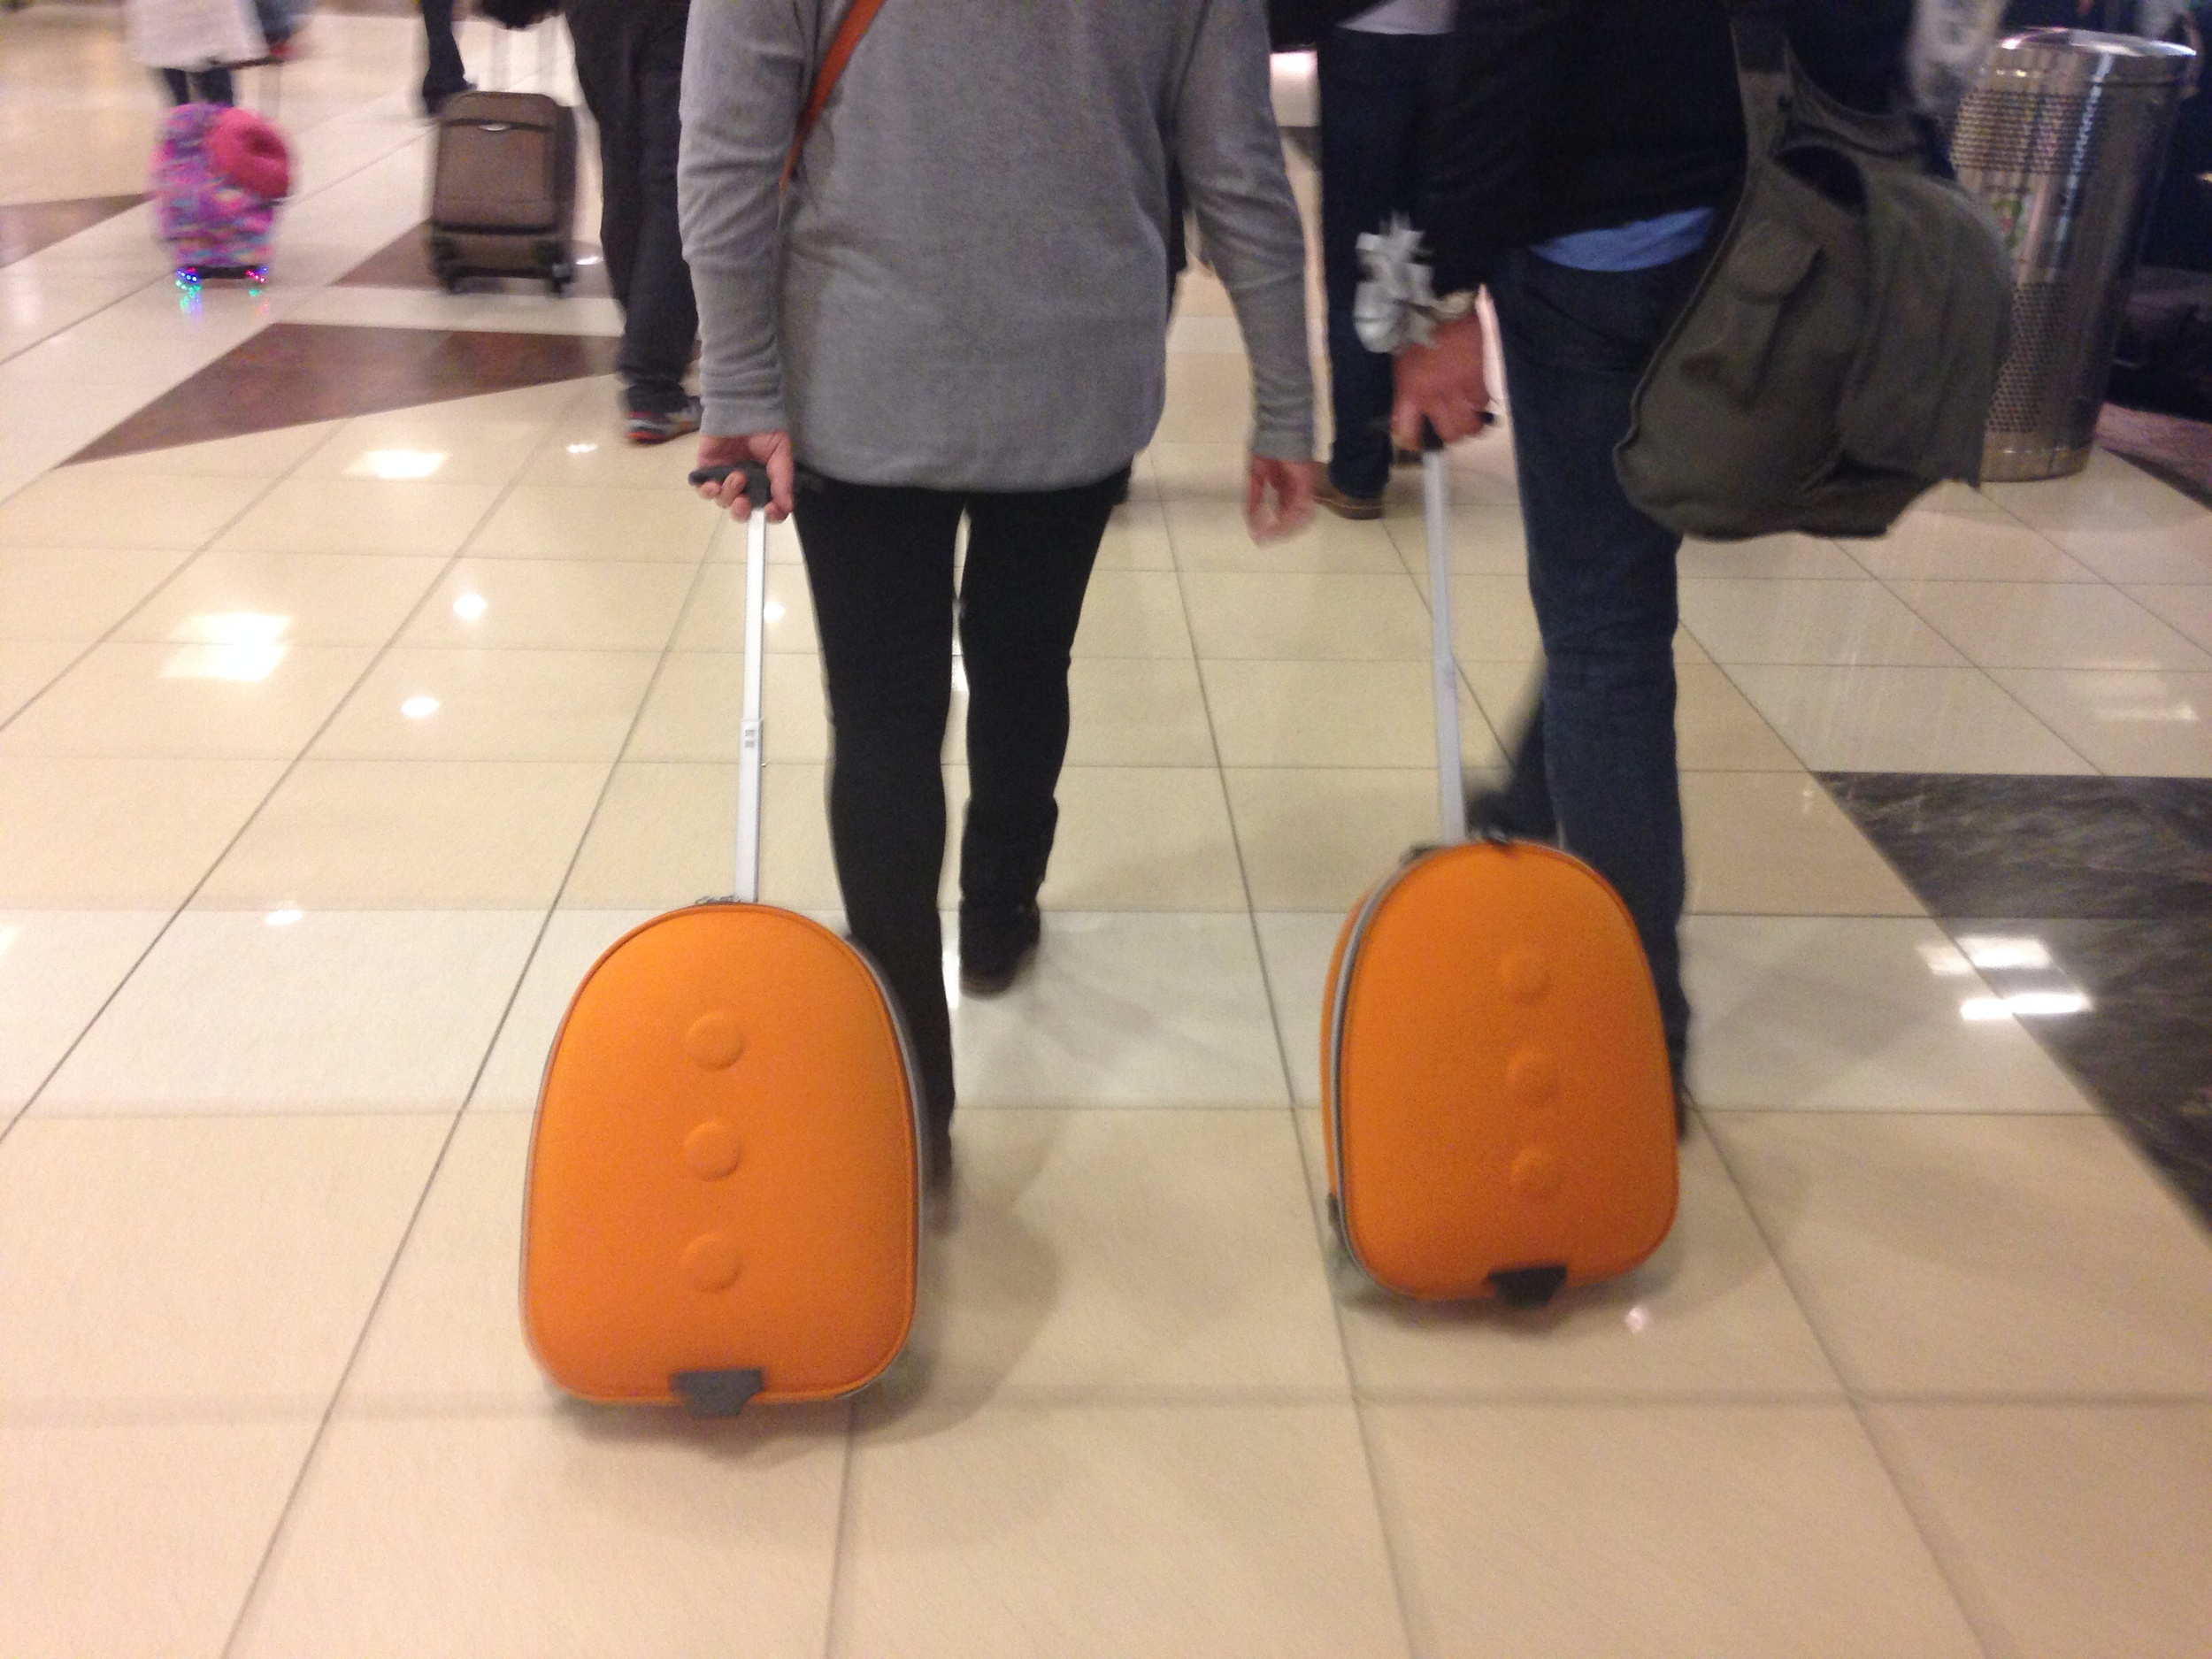 Image of matching suitcase people courtesy of me, following people in the airport.